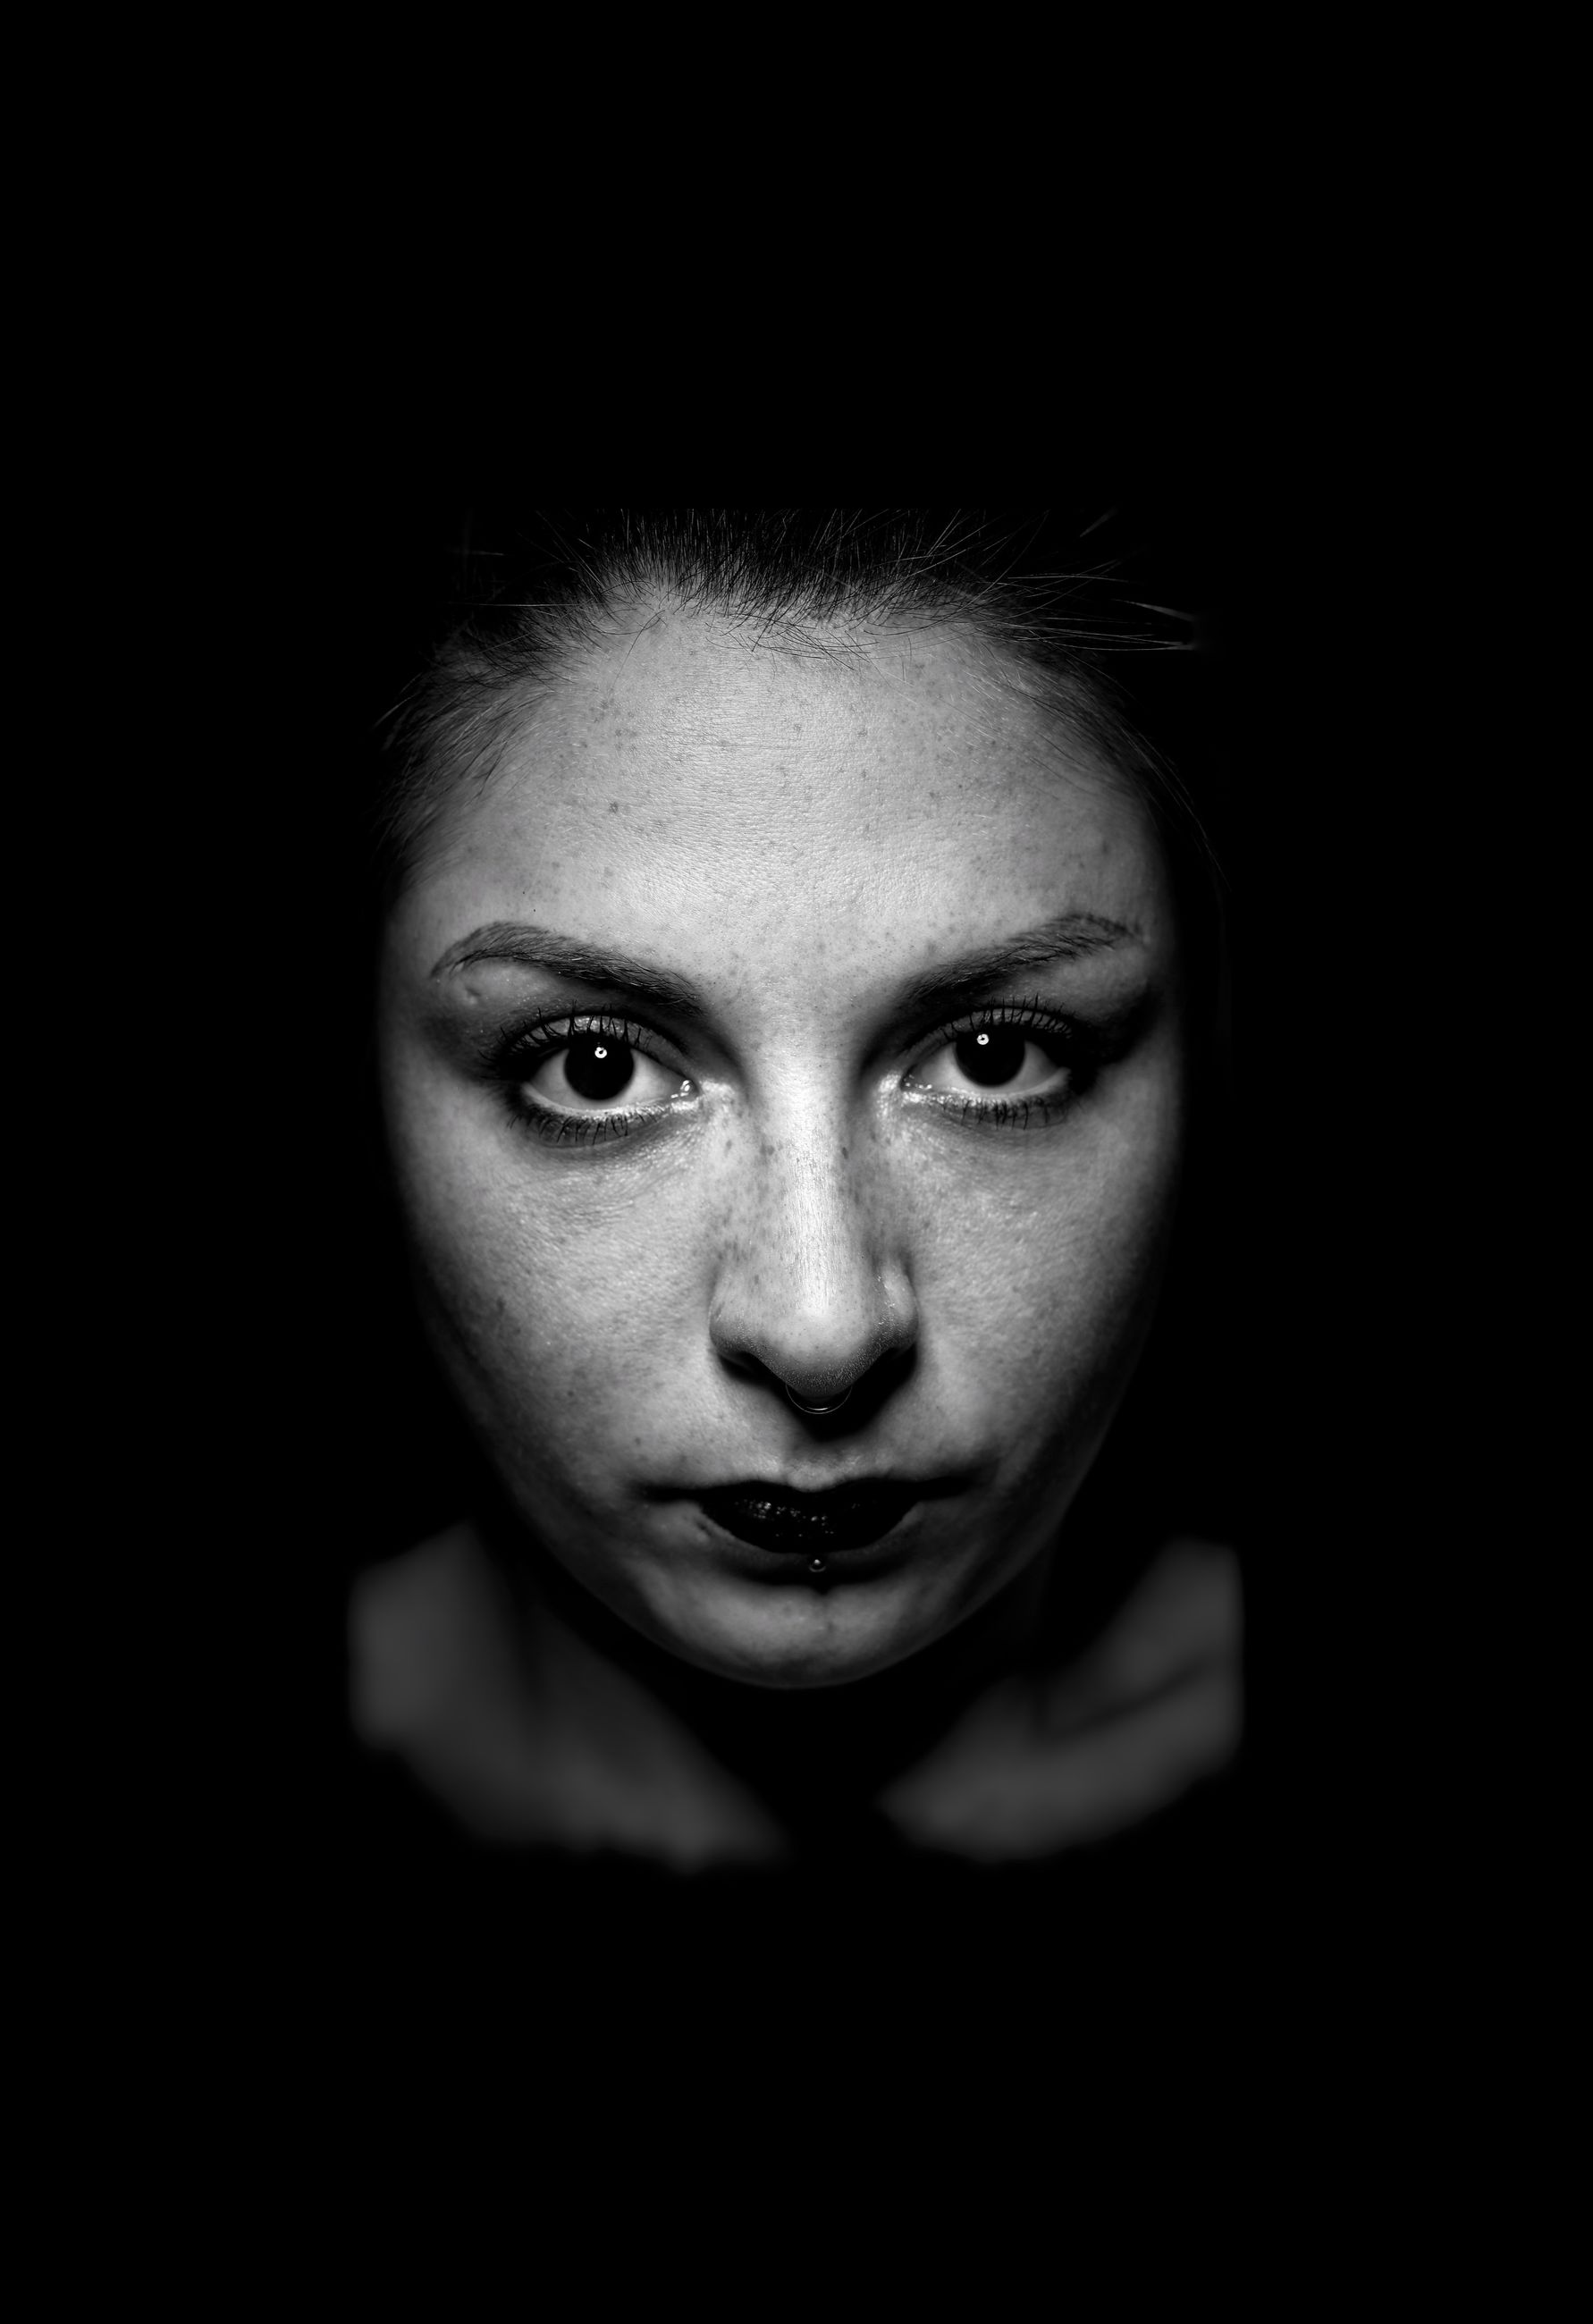 portrait, looking at camera, headshot, one person, front view, indoors, close-up, studio shot, black background, young adult, mid adult, young women, mid adult women, women, emotion, adult, body part, human body part, human face, aggression, depression - sadness